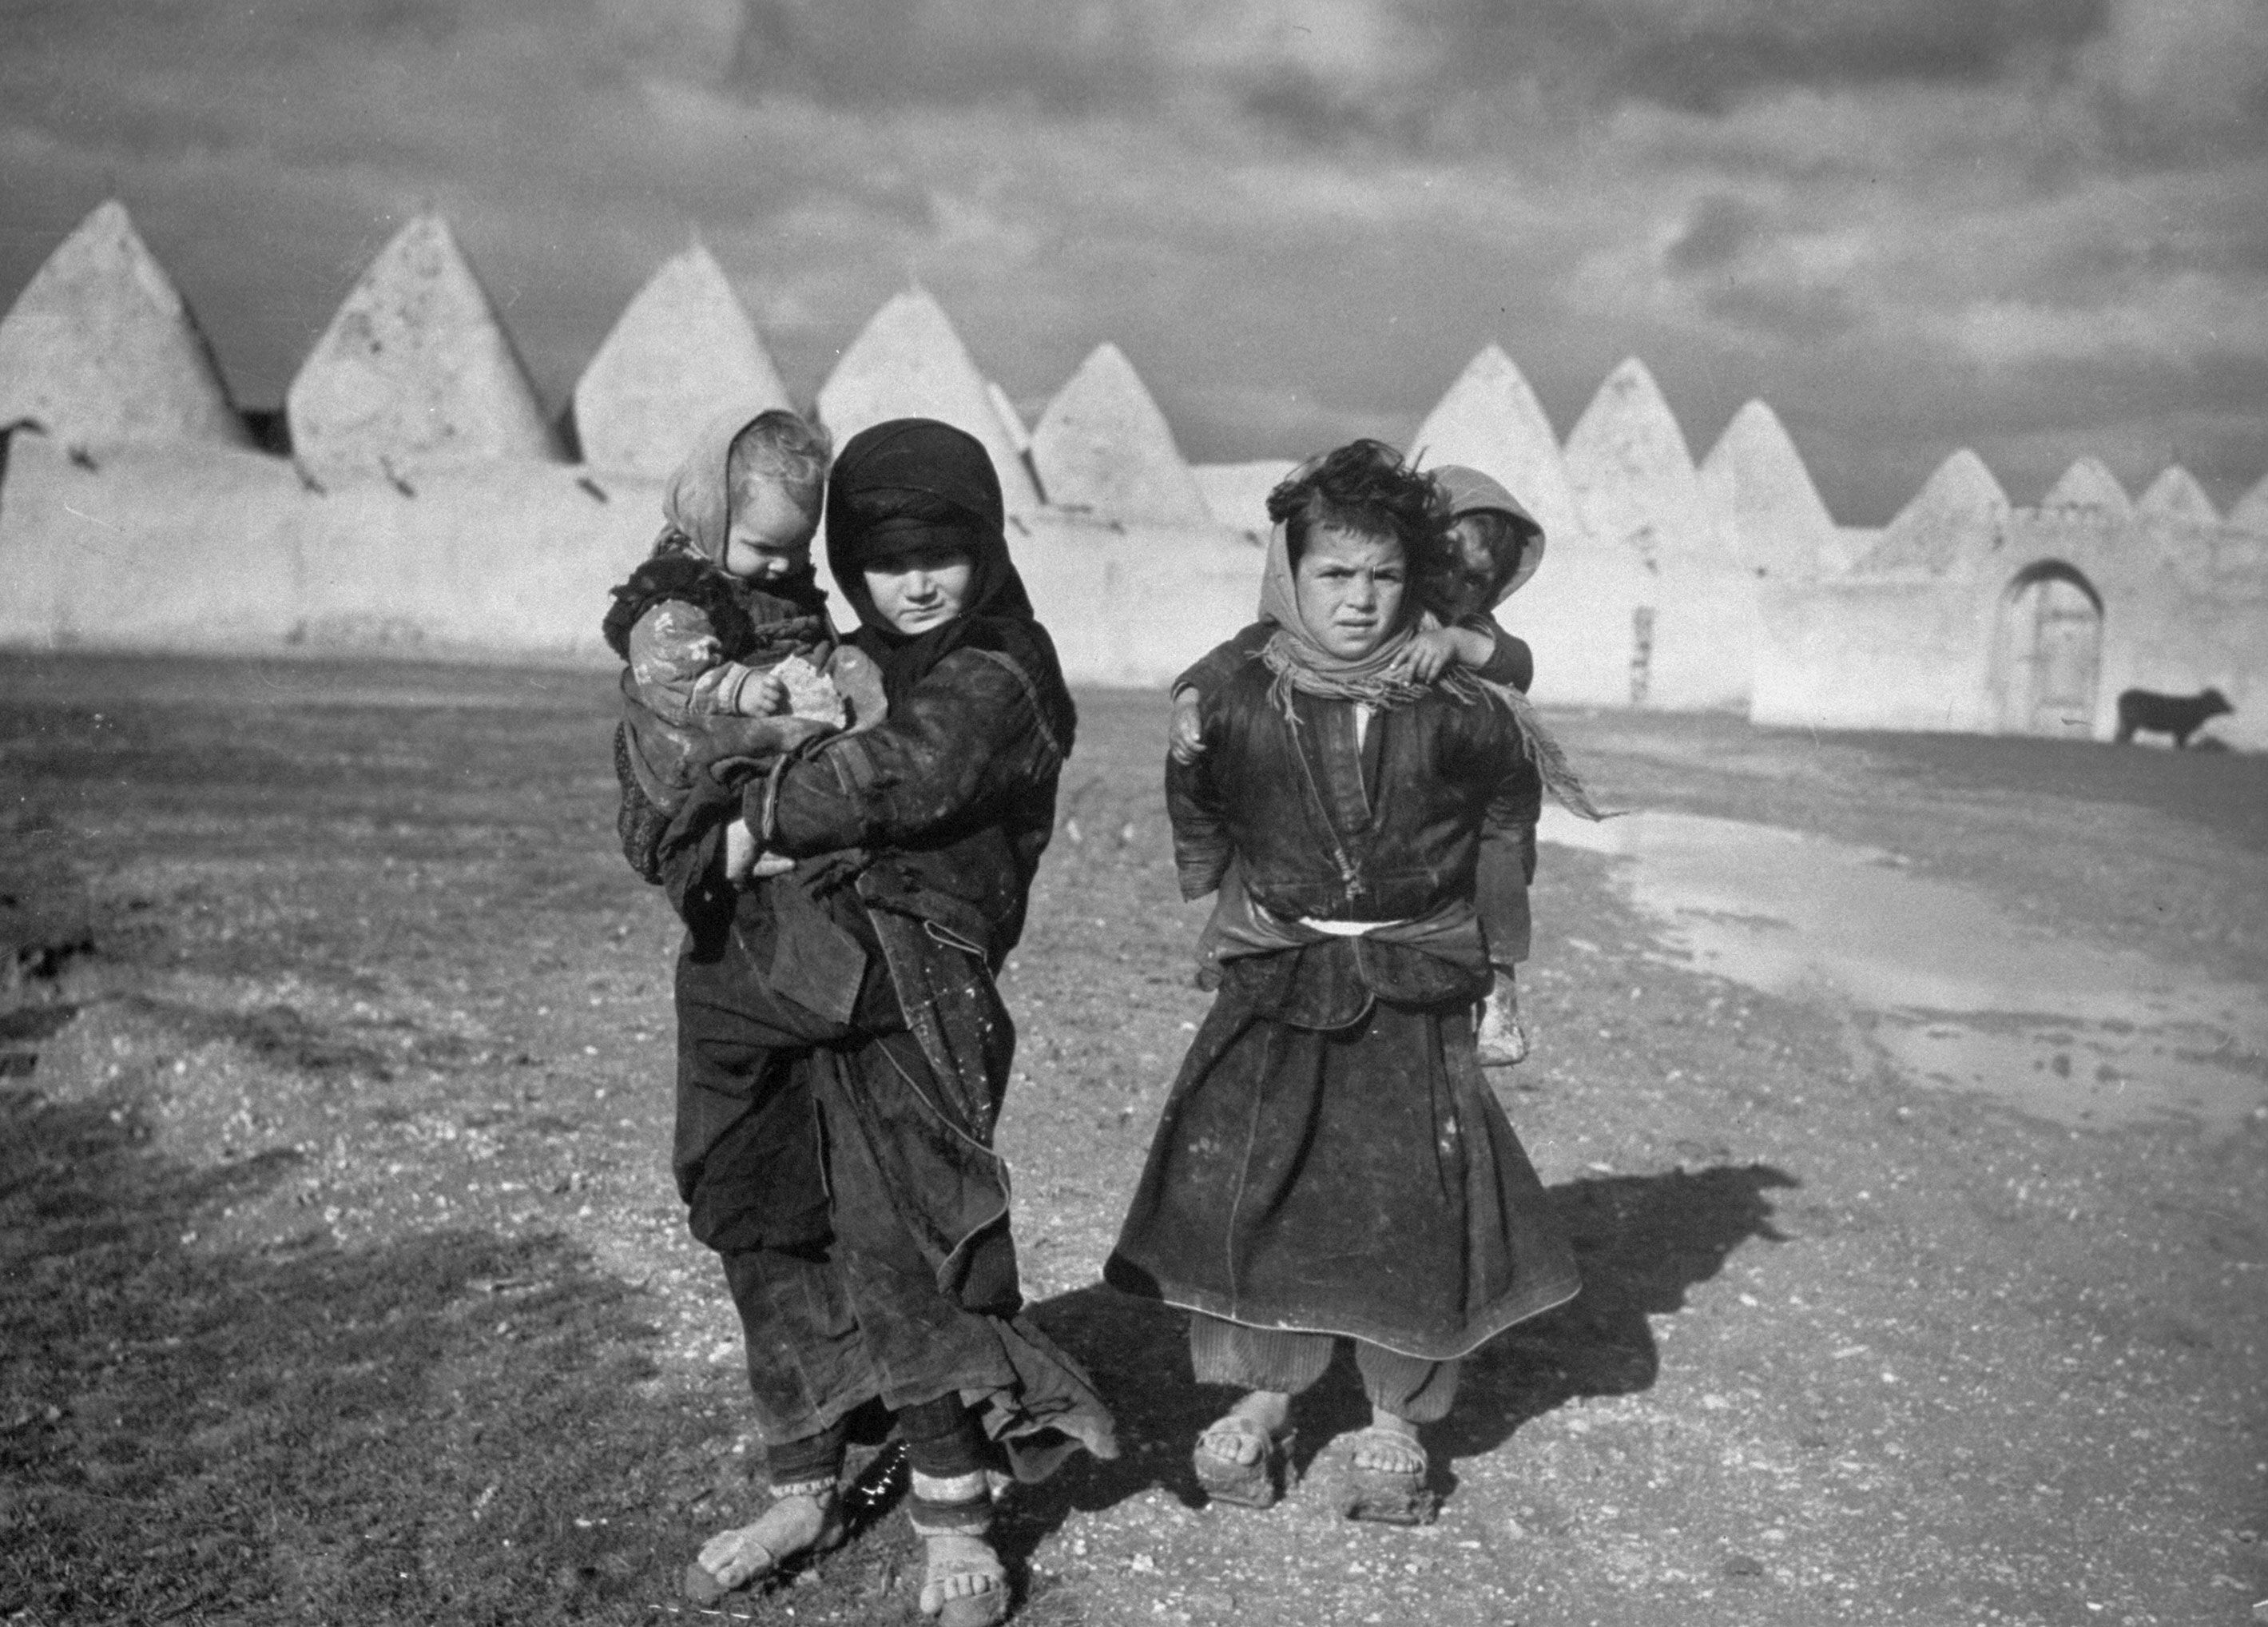 Syrian Children Outside The Walled Town Of Tell Bisse Syria 1940 Margaret Bourke White Black And White Photographs Syrian Children